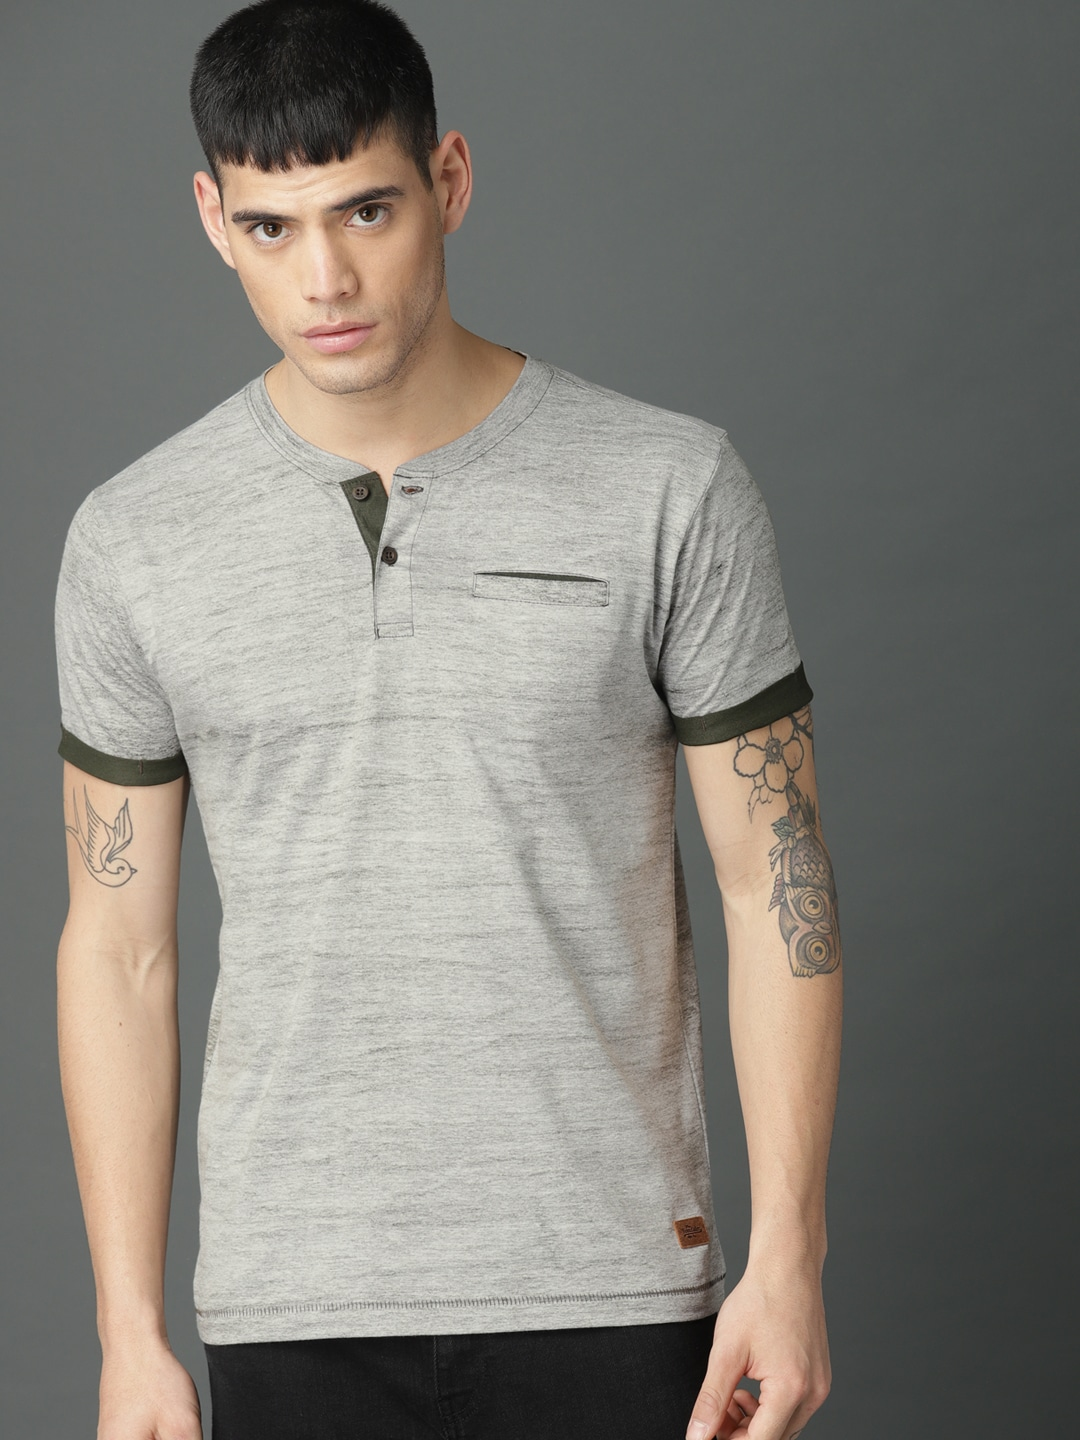 roadster men apparel shirts buy roadster men apparel shirts onlineroadster men apparel shirts buy roadster men apparel shirts online in india